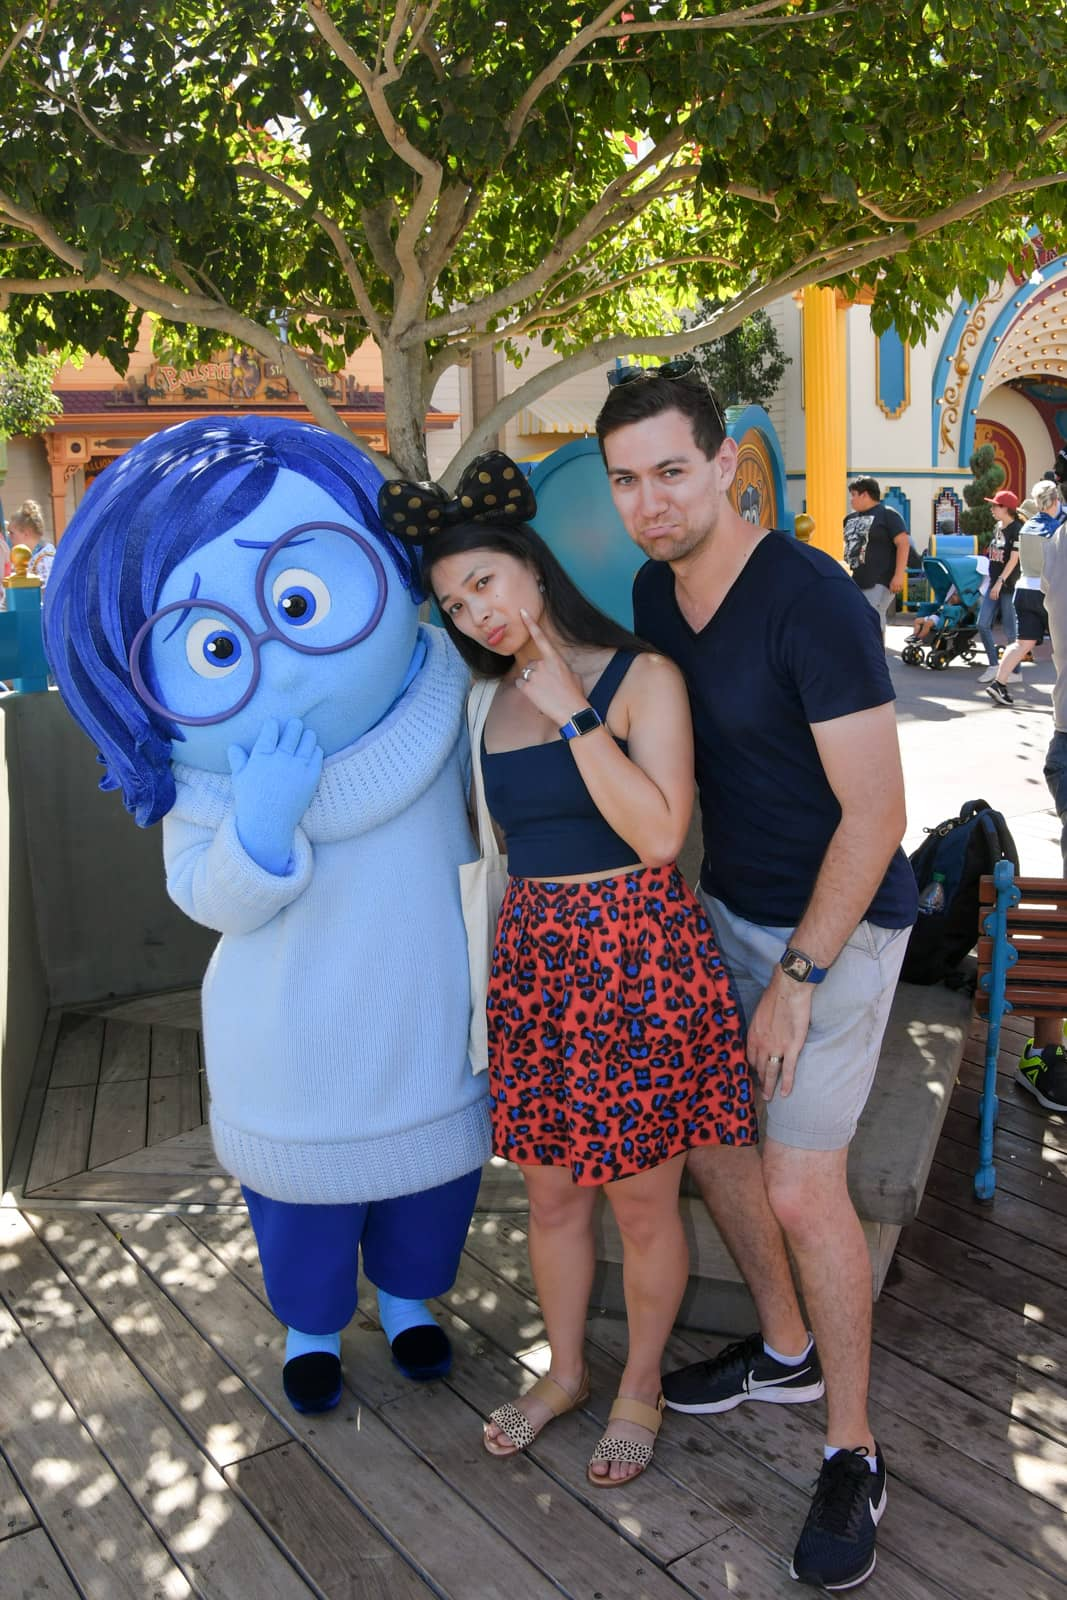 A man and woman posing with sad faces, alongside a person dressed in a character costume of Sadness from Pixar film Inside Out. Sadness' costume is different shades of blue with blue skin, blue glasses and blue hair.